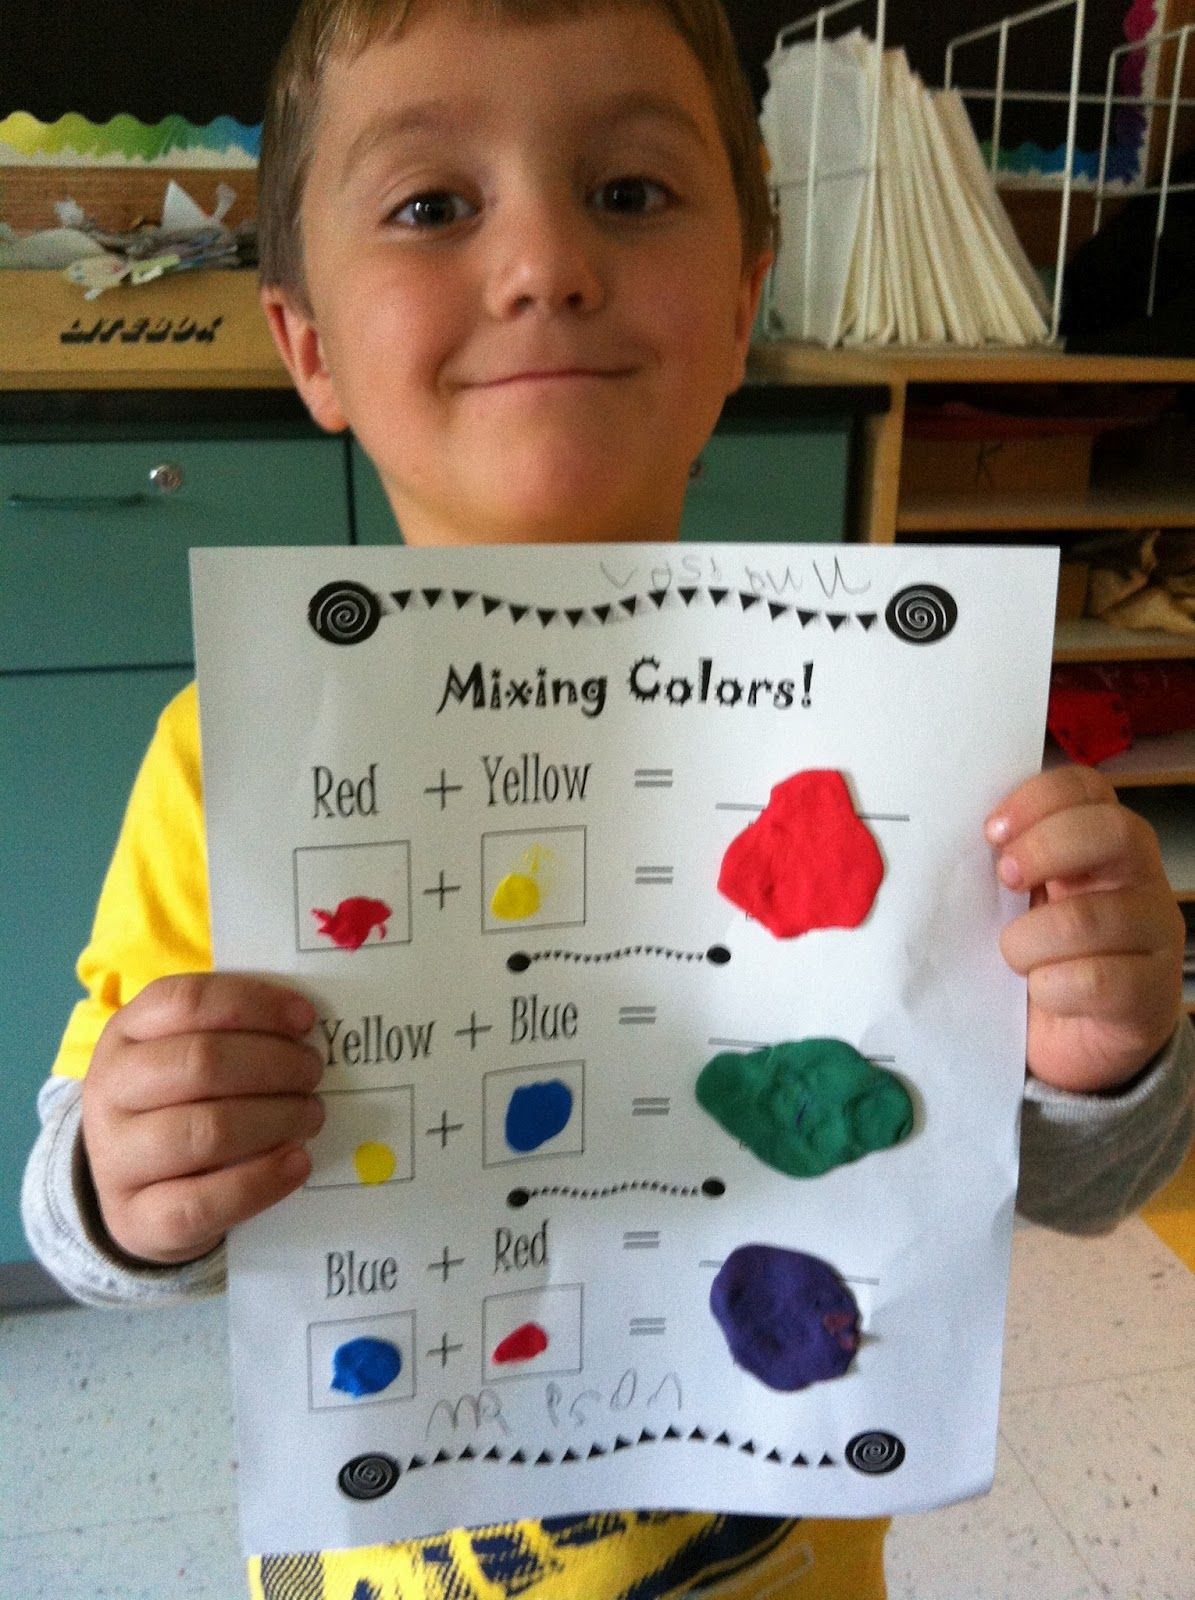 Blank Worksheet To Write And Paint The Way To Make Secondary Colors